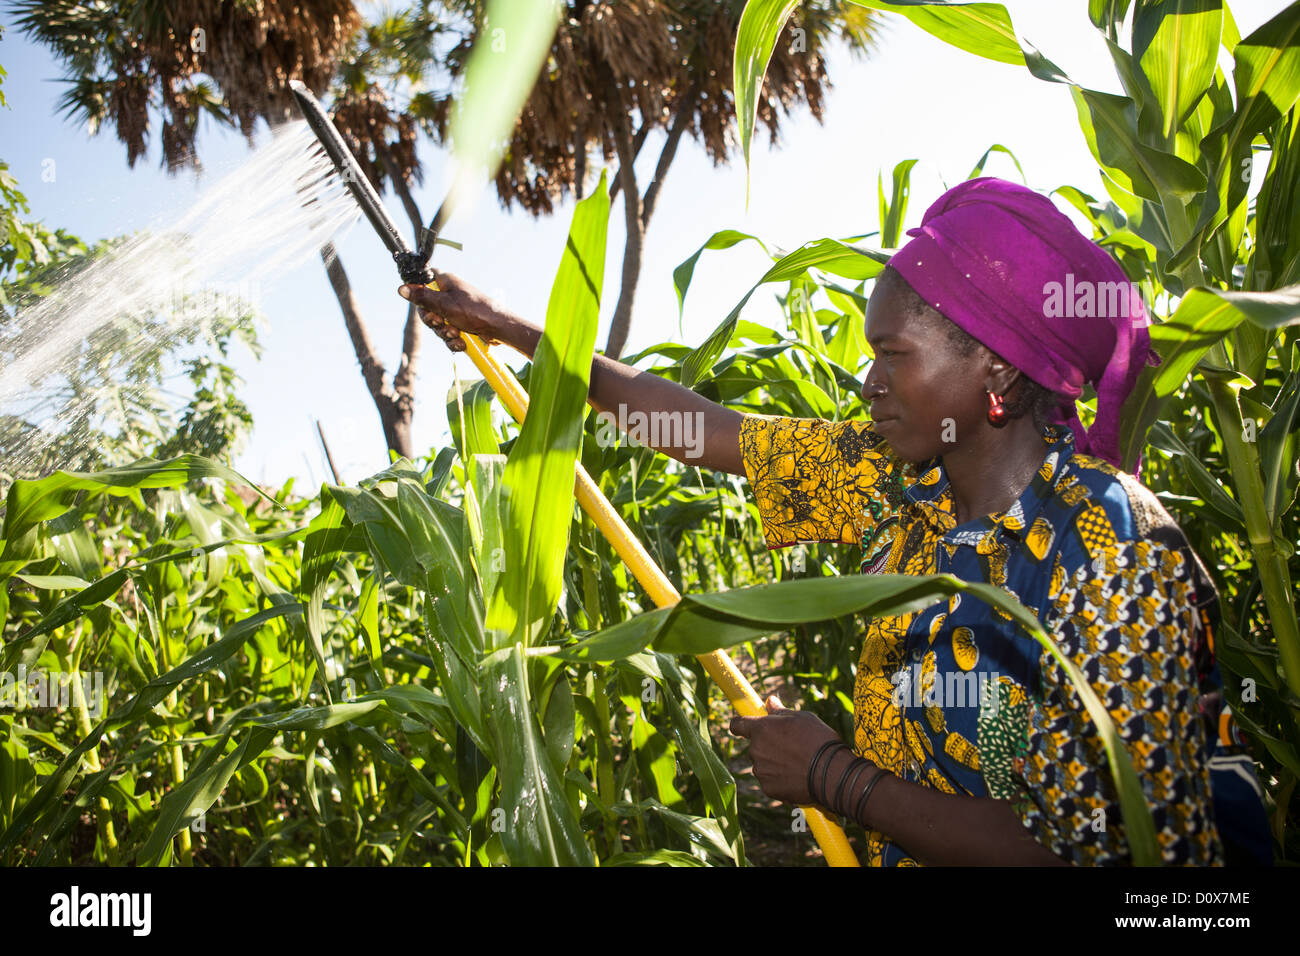 A woman waters her garden with the help of treadle pump irrigation system in Doba, Chad, Africa. - Stock Image